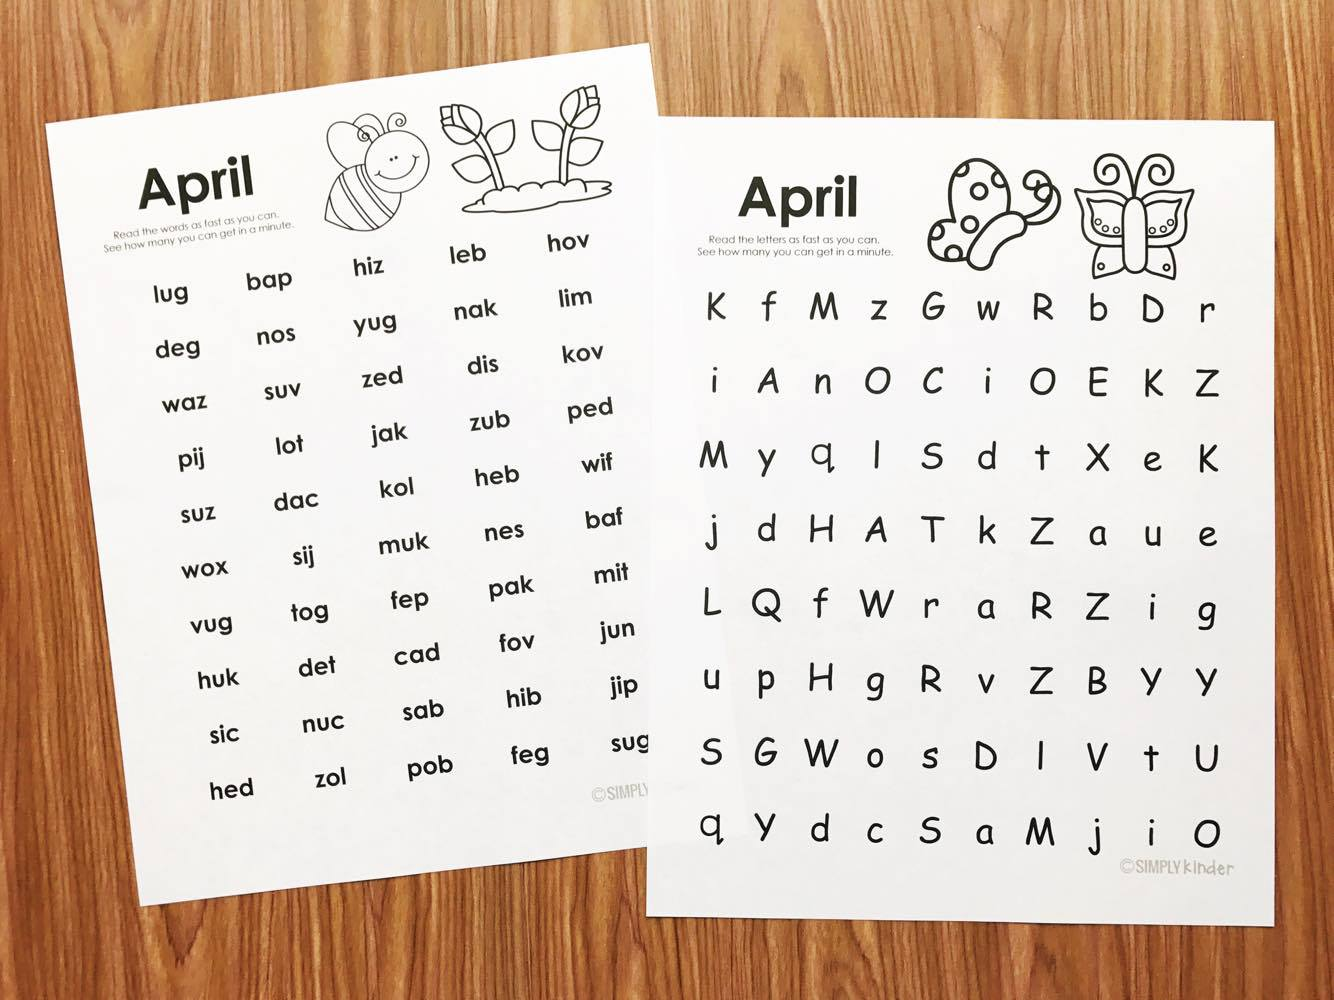 Free April Fluency Practice for Kindergarten and first grade.  Send home as homework, practice in class, or use during centers with your kindergarten students.